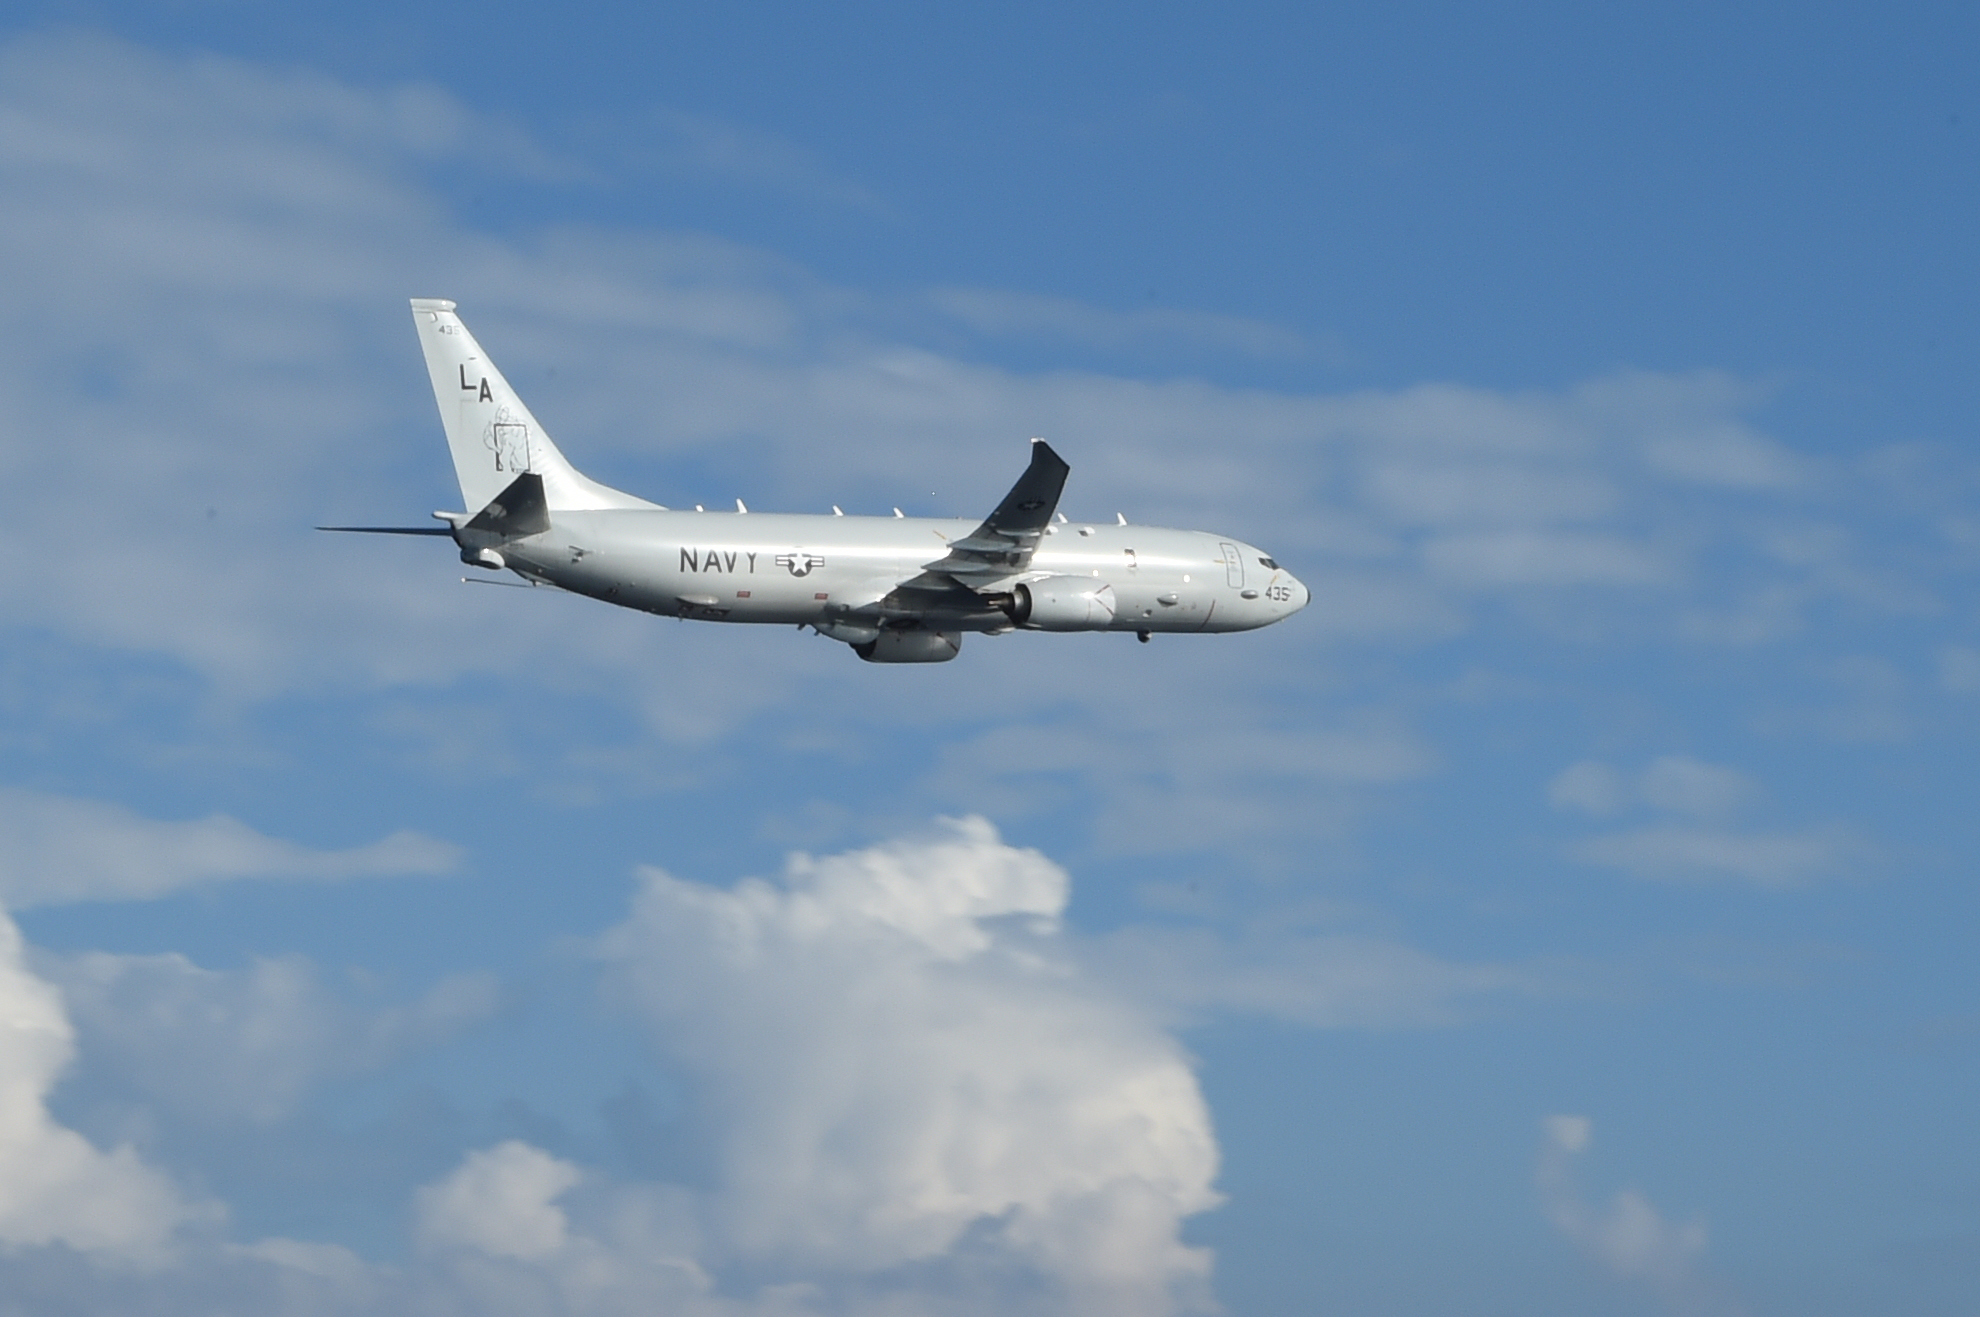 7th Fleet P-8A Poseidon finds missing vessel in South Pacific, all passengers safe